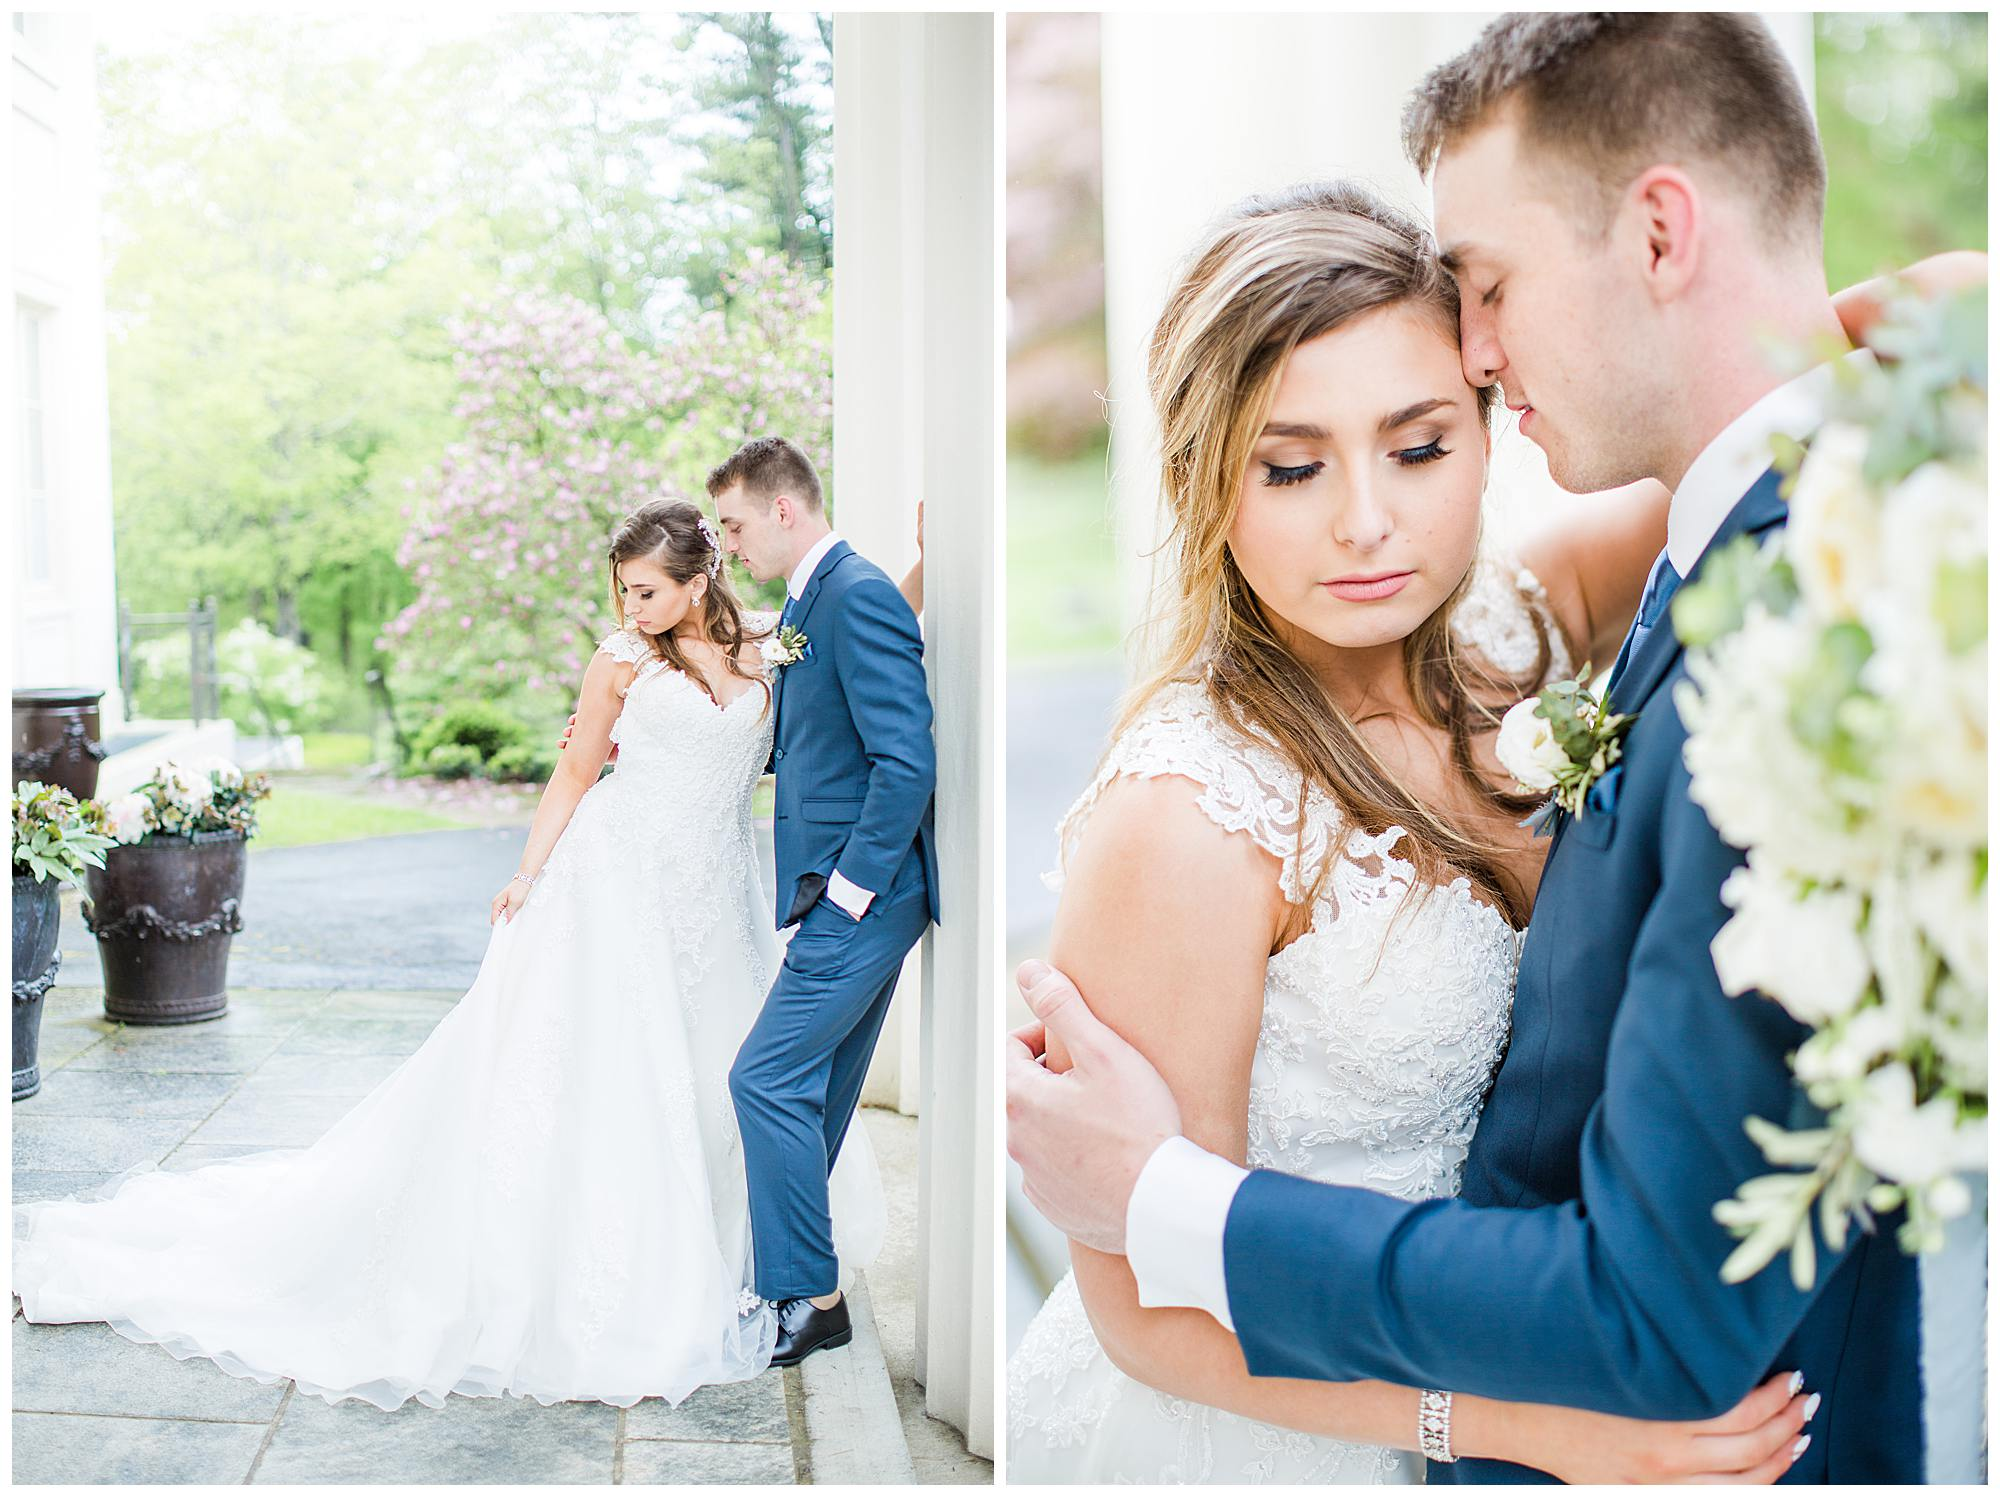 Wadsworth Mansion Wedding in Middletown Connecticut